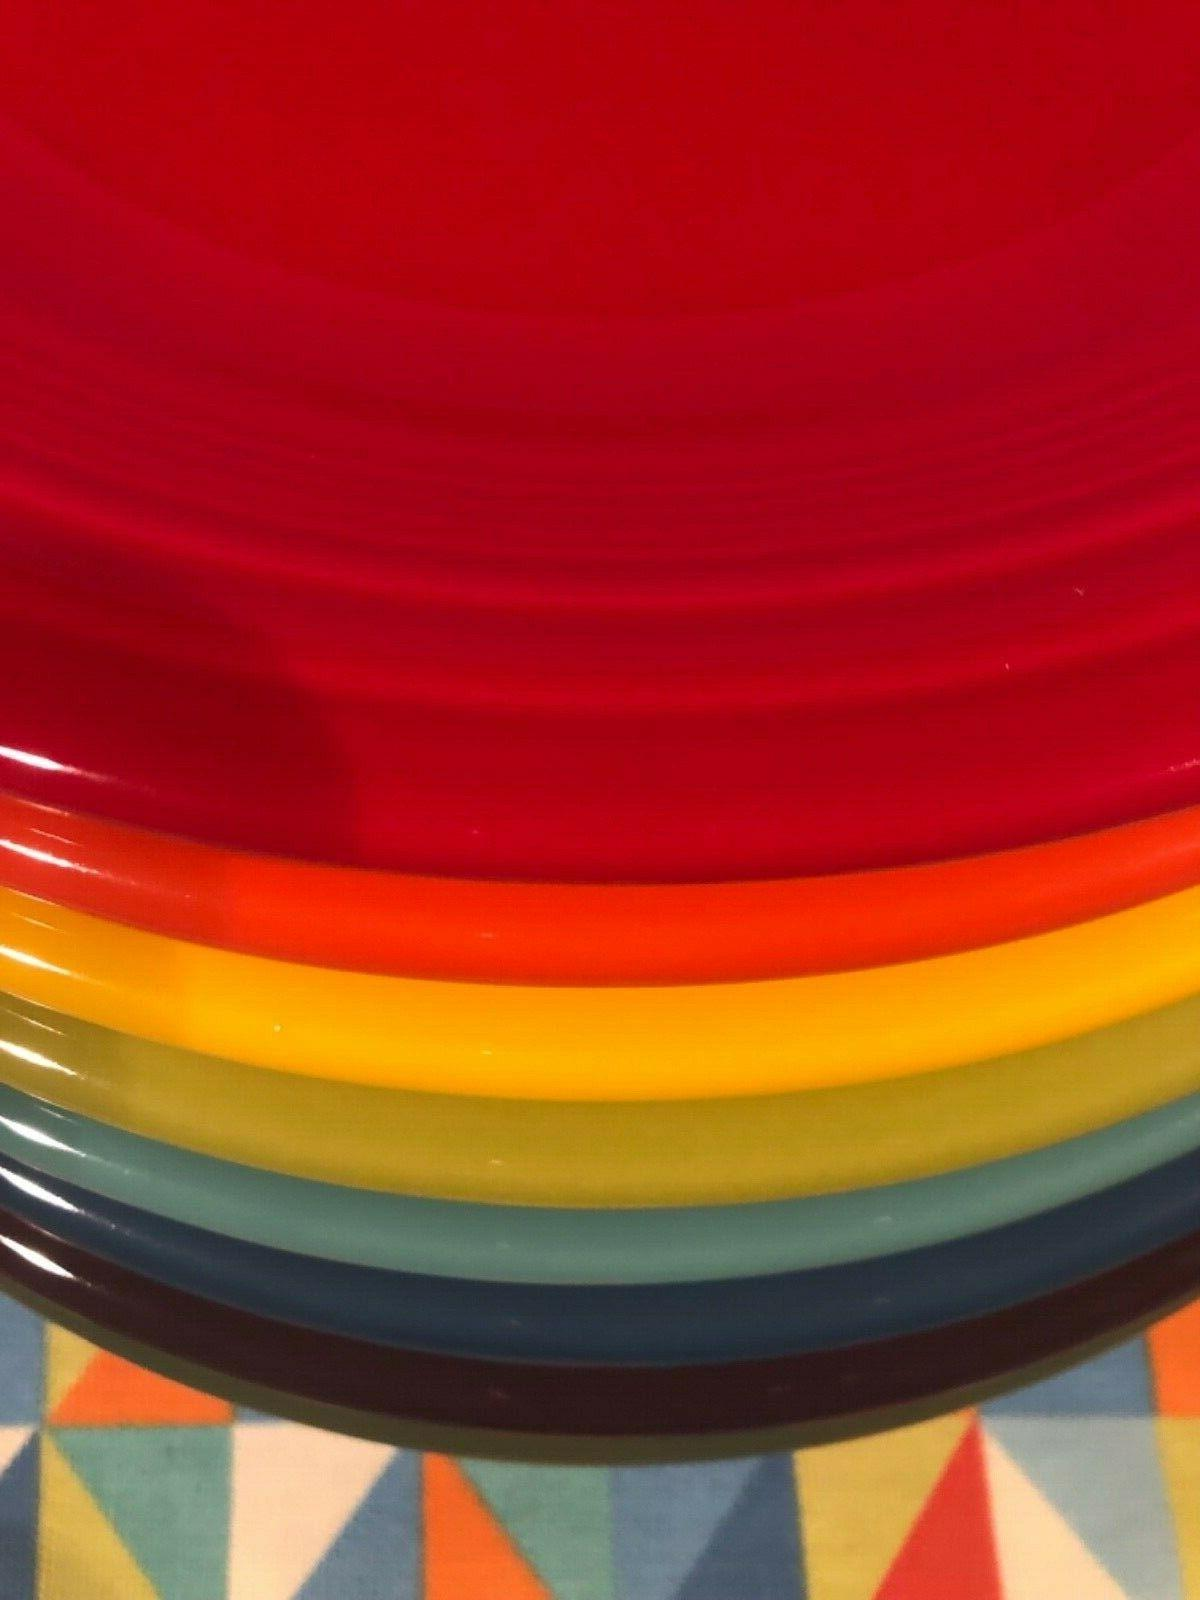 NEW COLOR PLATES FIESTAWARE FREE